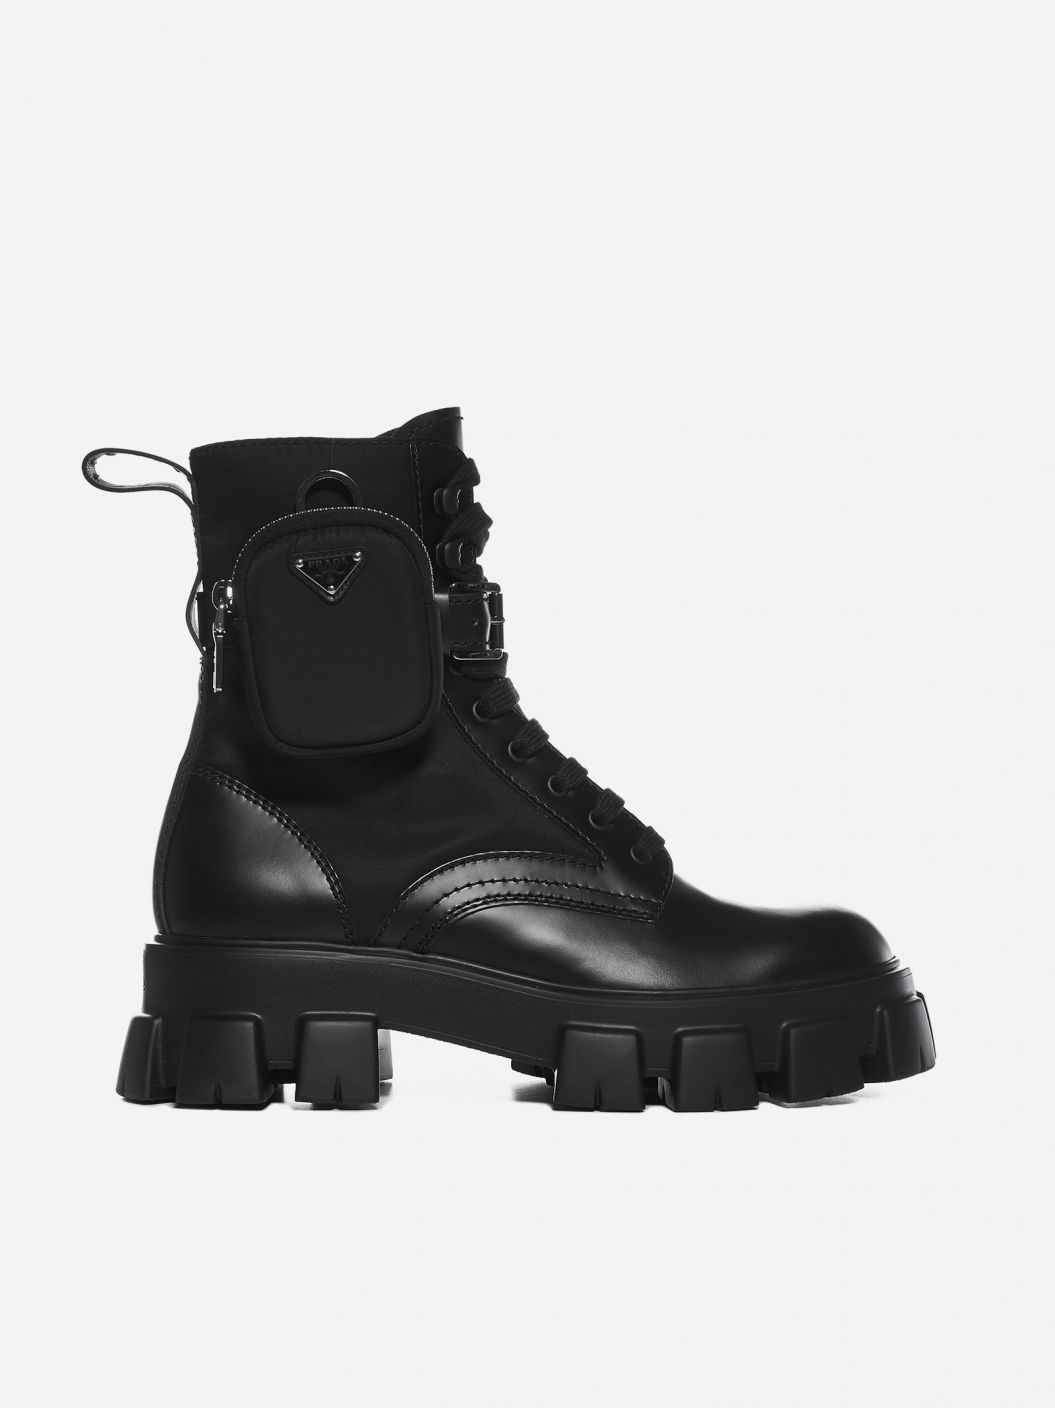 Monolith leather and nylon combat boots